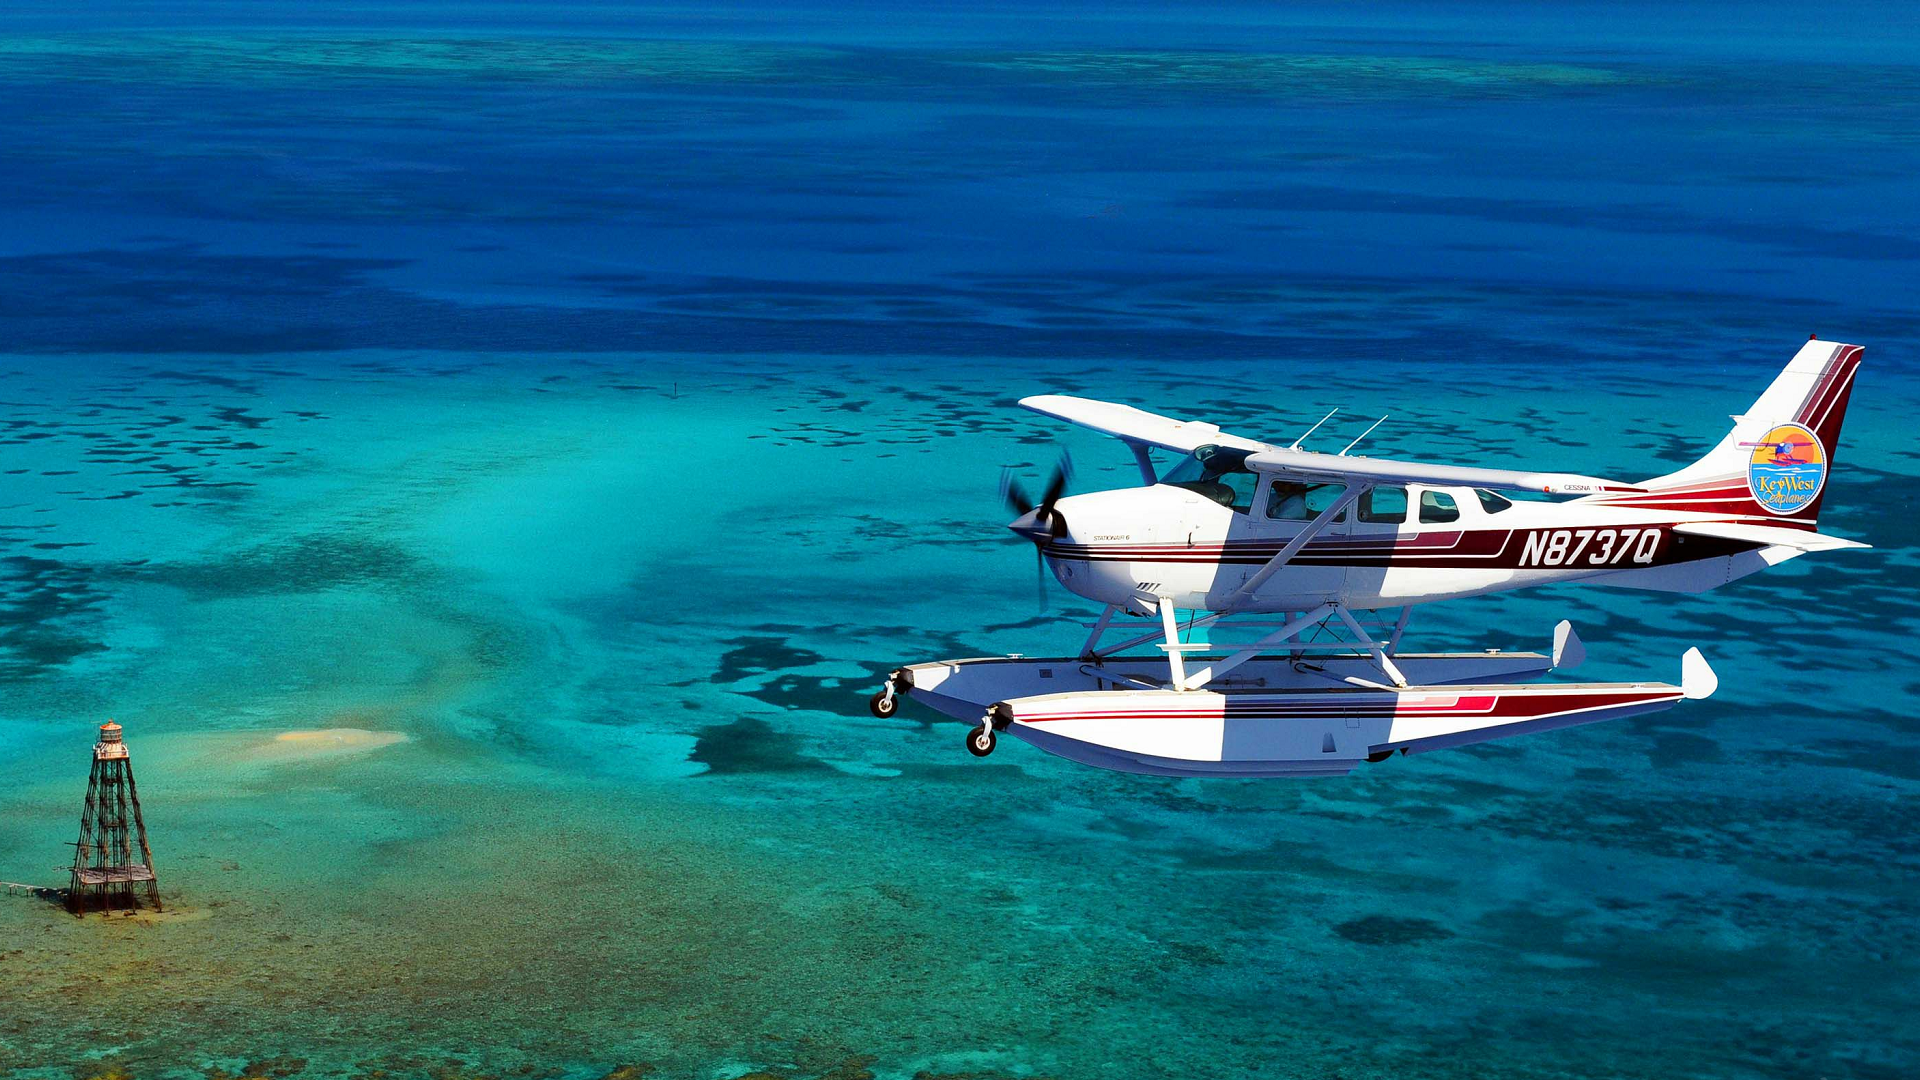 Daily Wallpaper: Cessna on Floats | I Like To Waste My Time